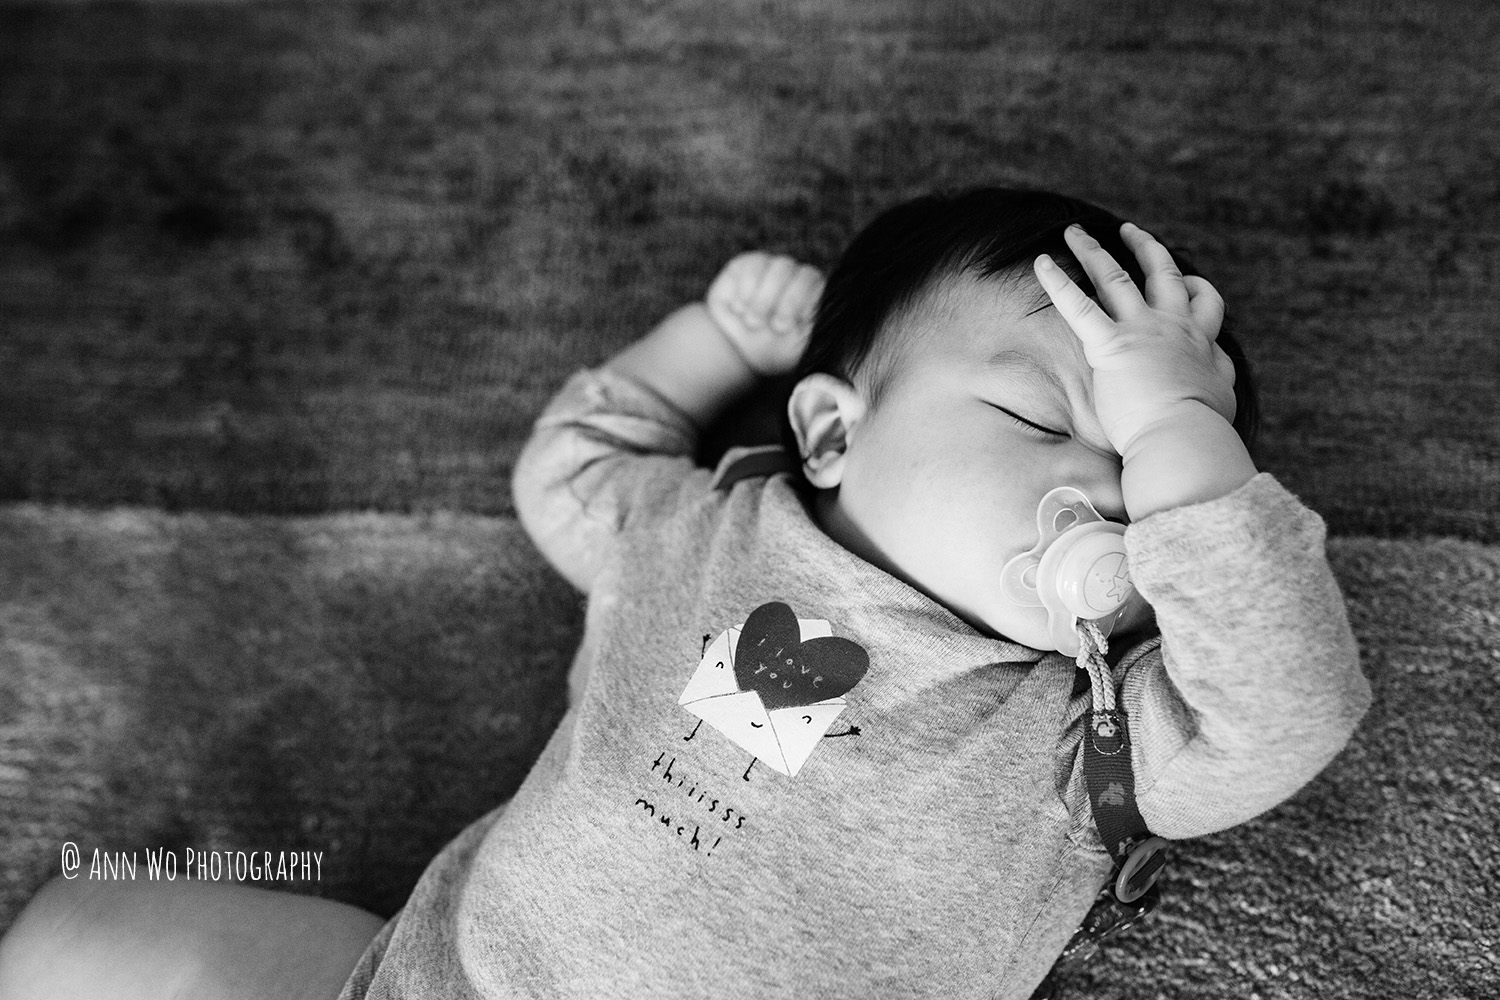 family-photography-london-ann-wo-toddler-baby-2442.jpg